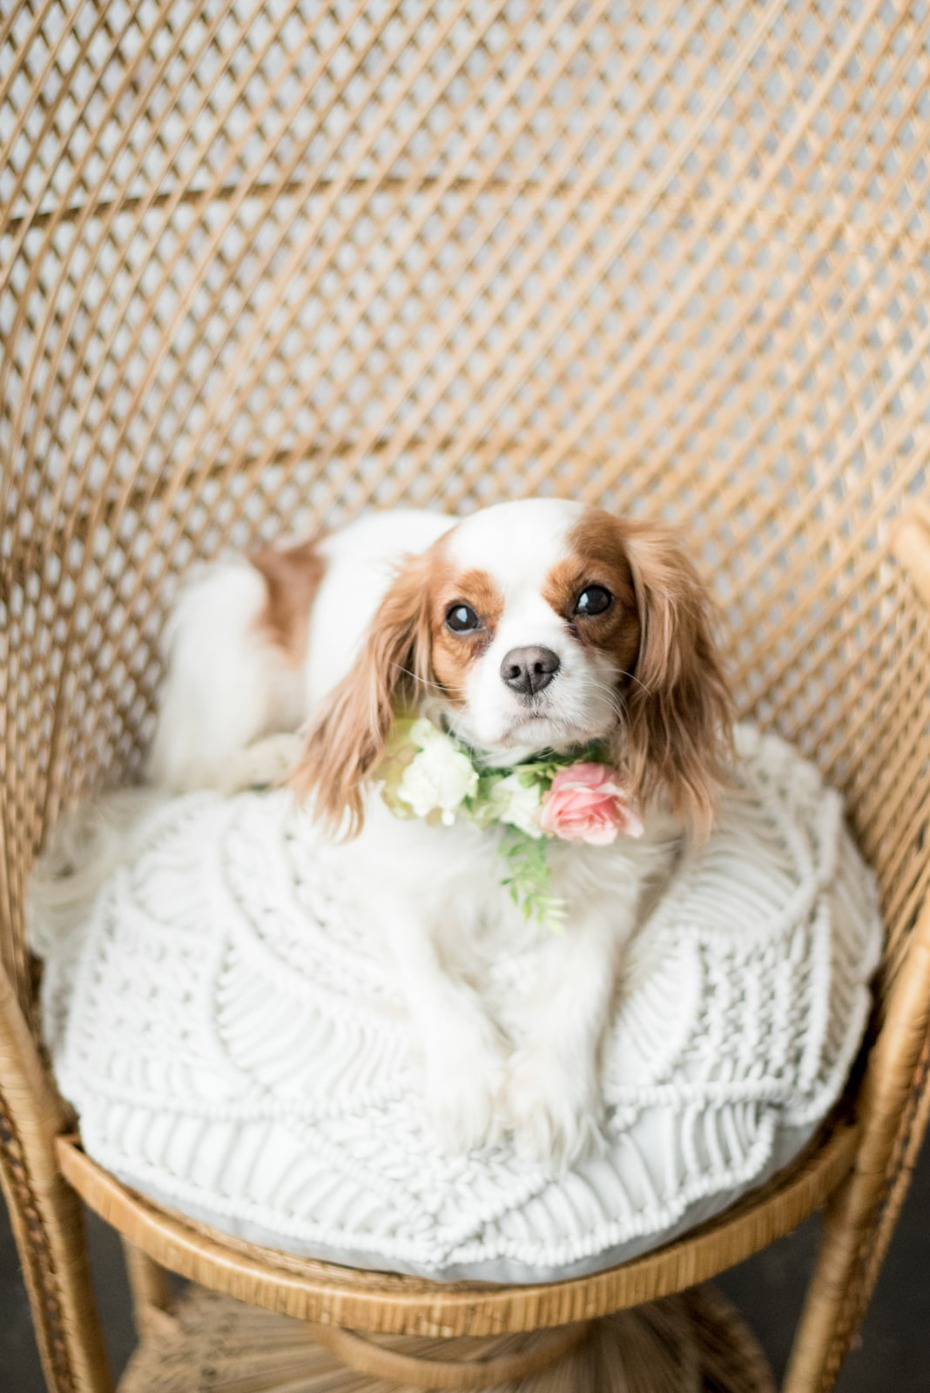 Cute wedding pup!